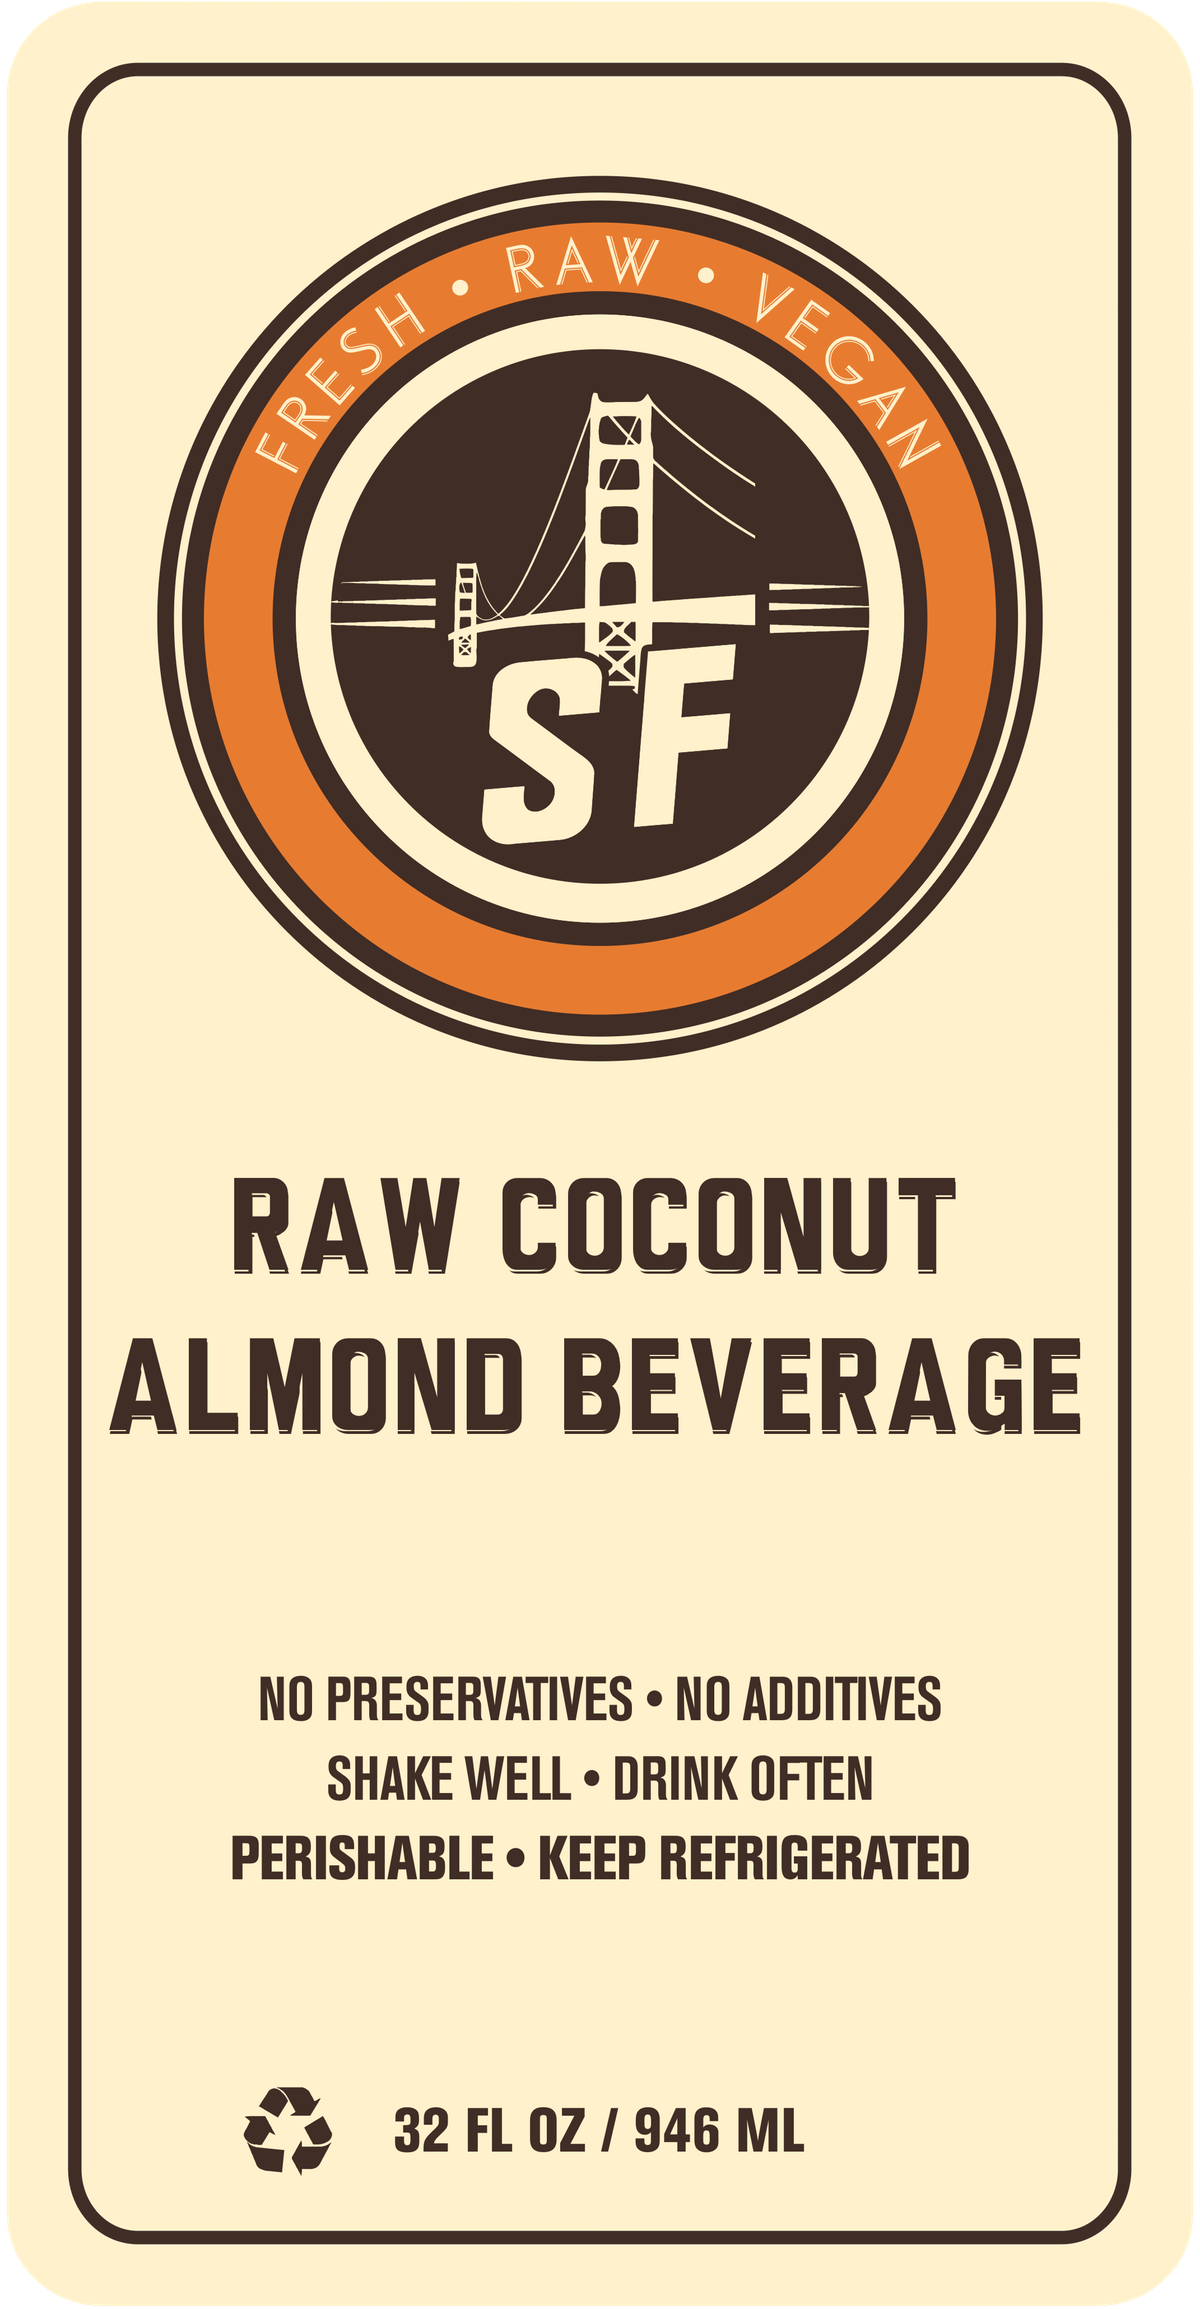 Update to existing bottle label